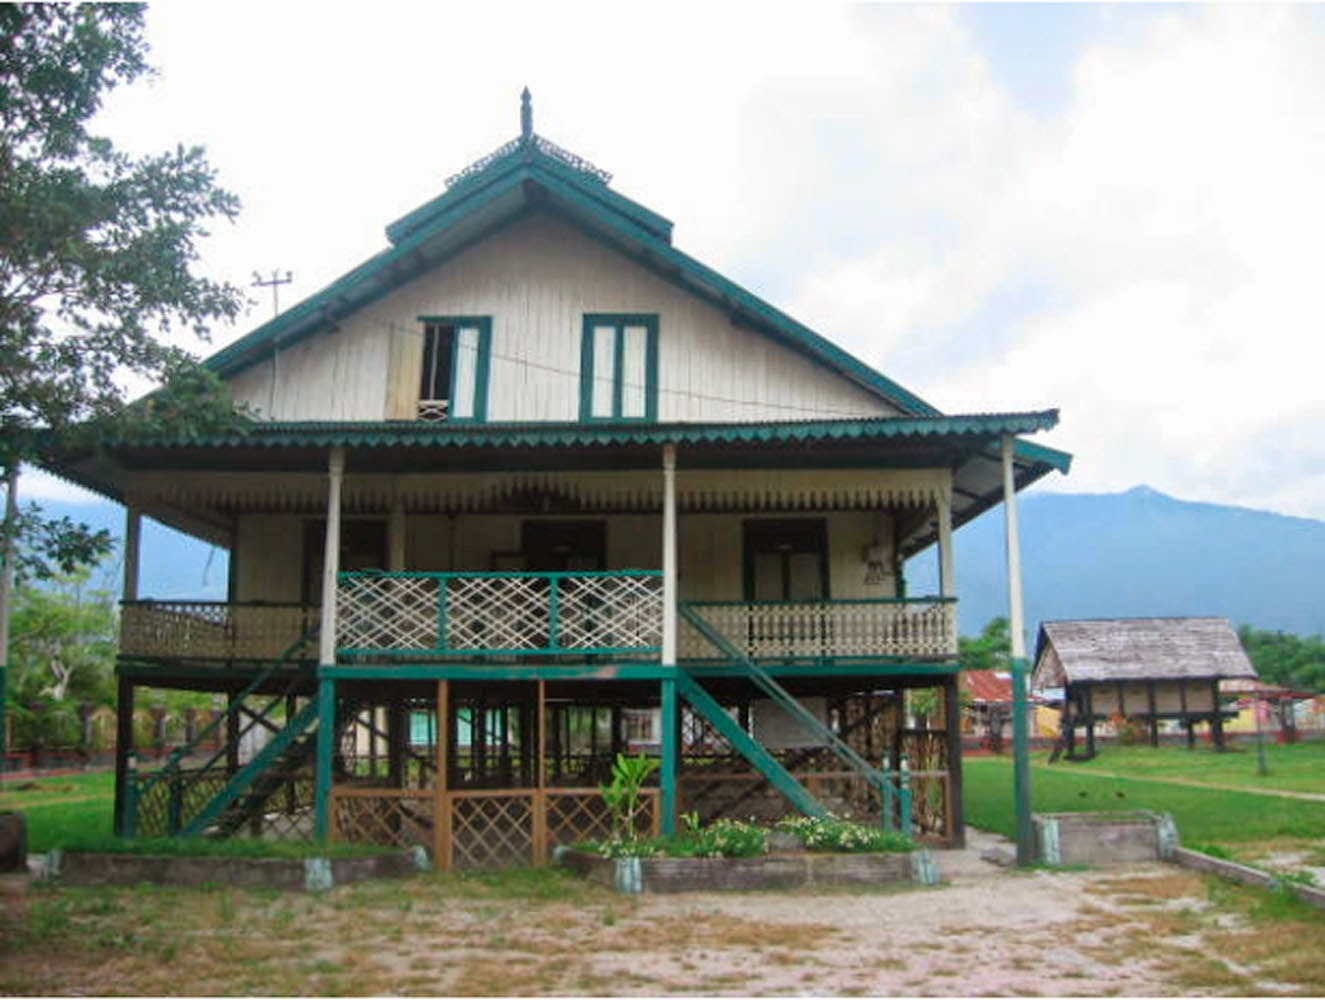 Download this Rumah Adat Souraja Banua Mbaso Oseaka picture